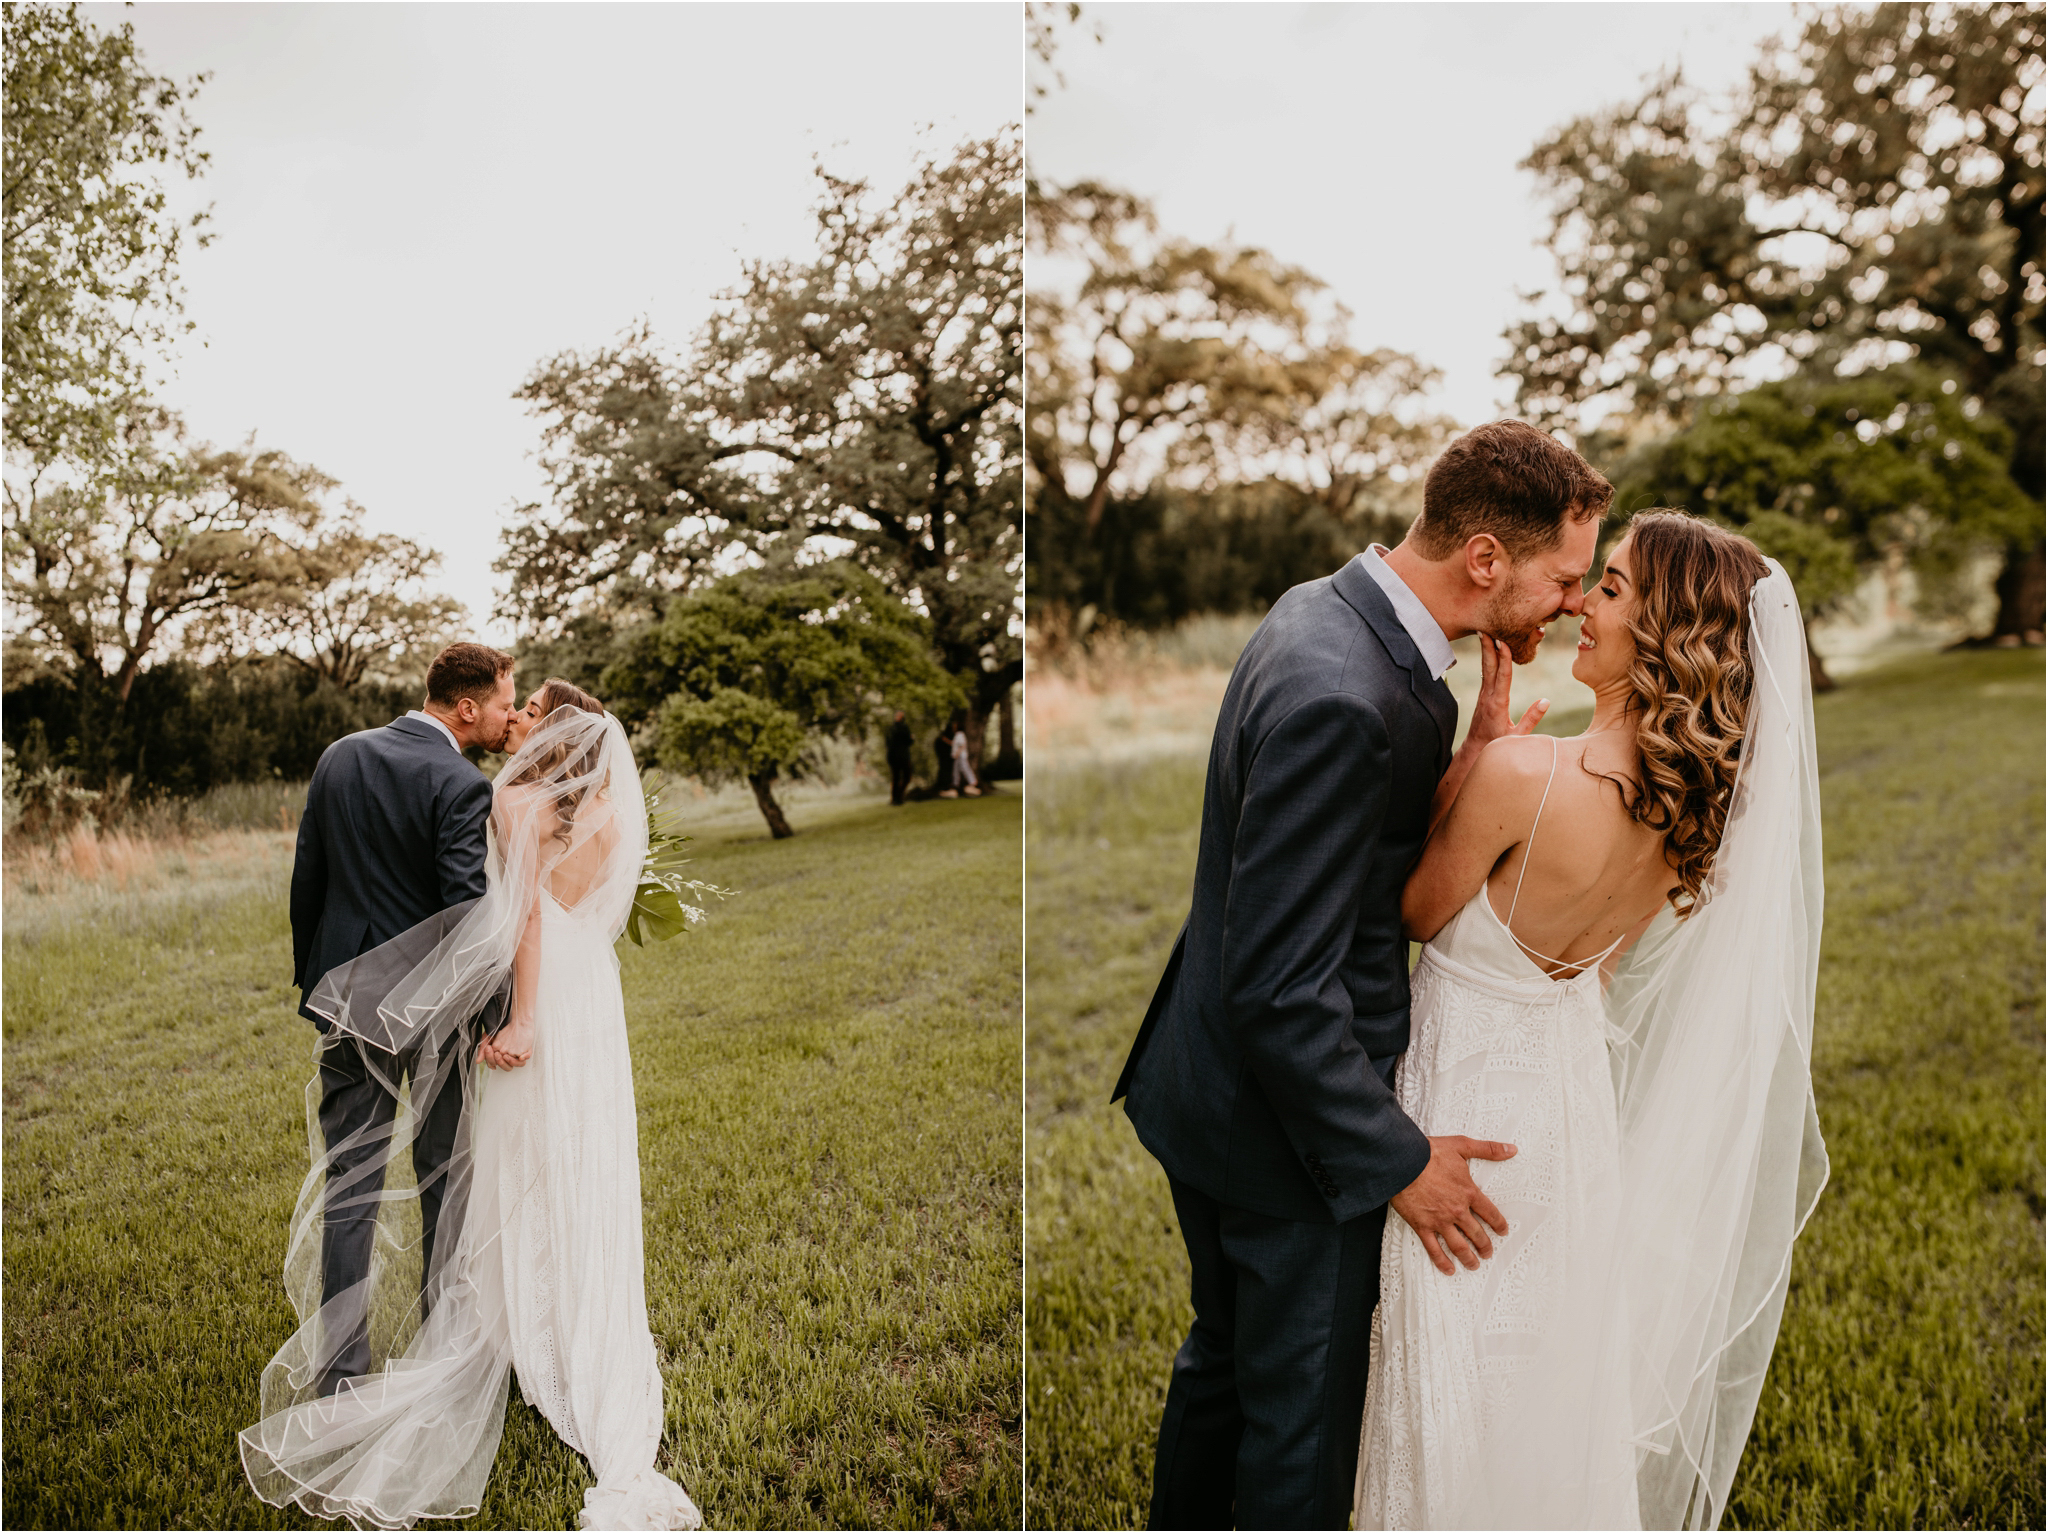 jillian-and-scott-pecan-springs-ranch-texas-and-washington-wedding-photographer-078.jpg